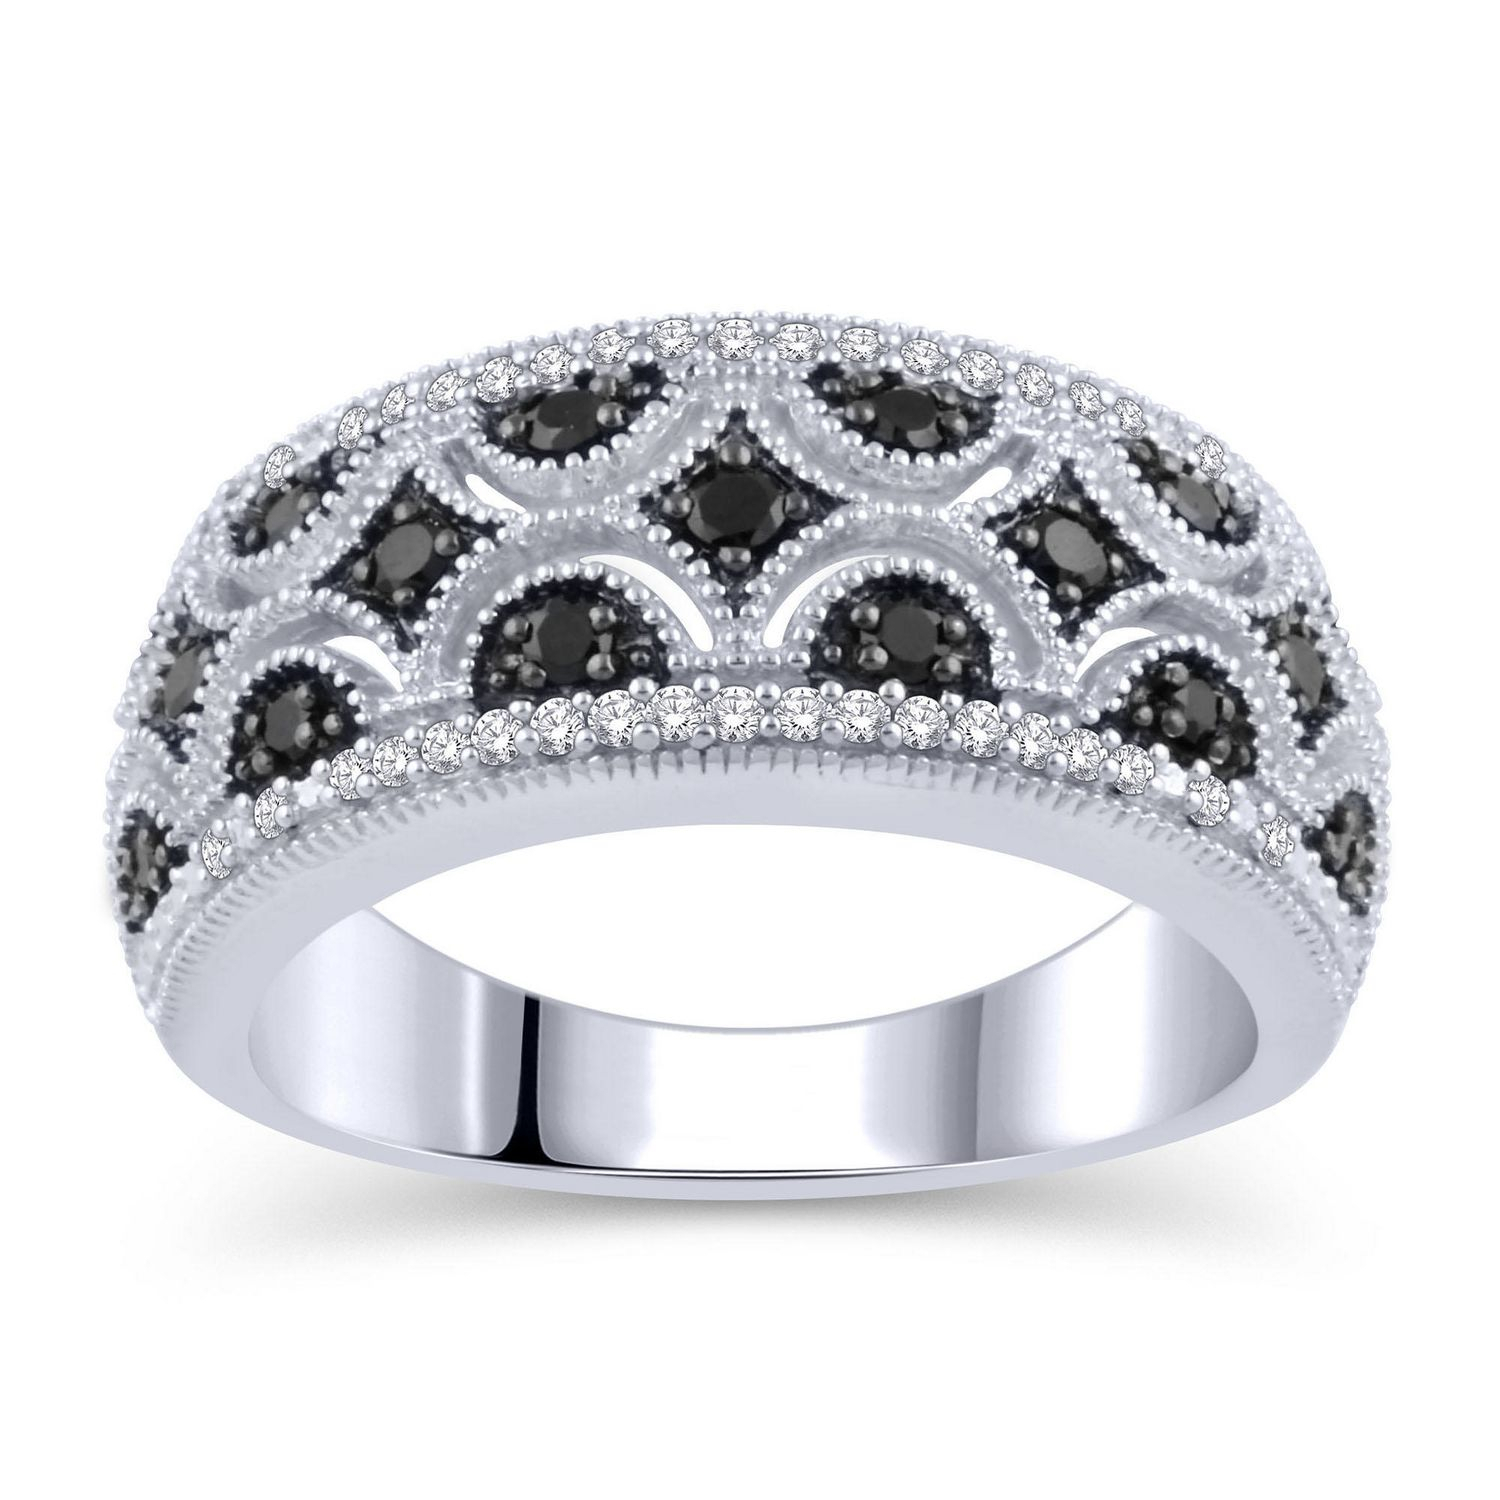 0.30 Ct. T.w. Enhanced Black And White Diamond Vintage Style Regarding Most Current Enhanced Black And White Diamond Vintage Style Anniversary Bands In Sterling Silver (Gallery 1 of 25)